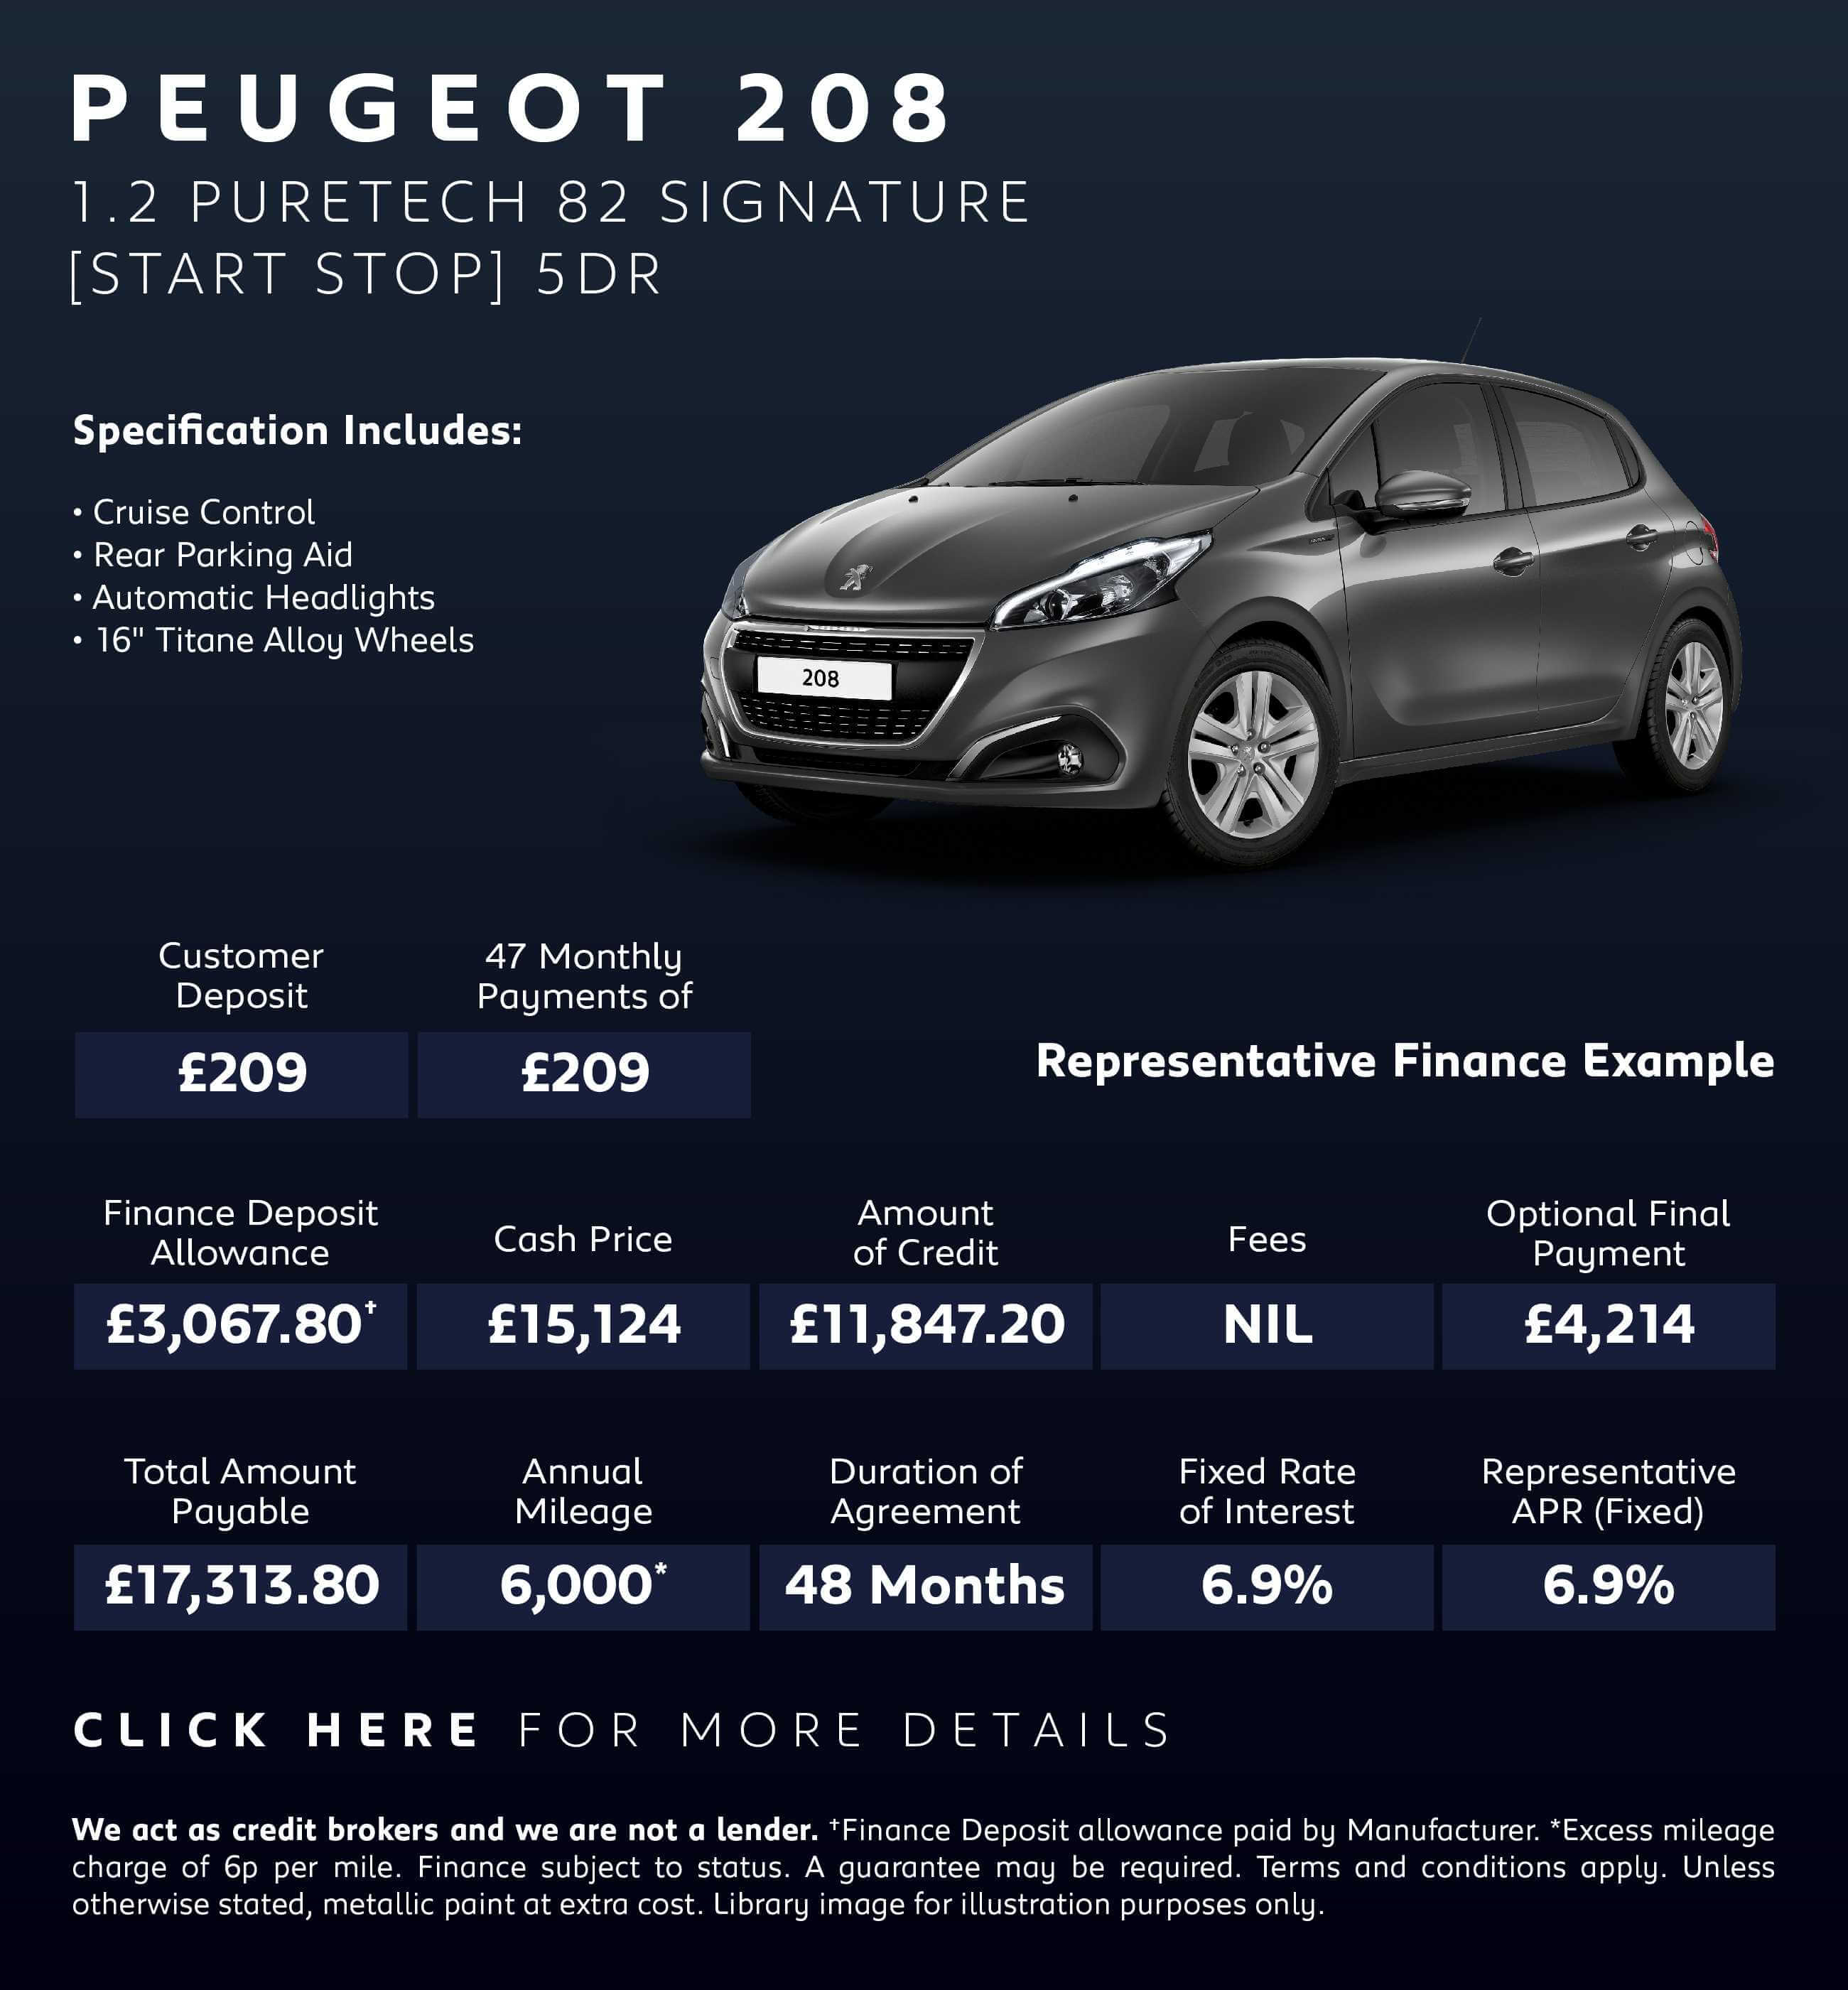 New Peugeot 208 Deals Peugeot 208 Signature Deals New Peugeot 208 Signature